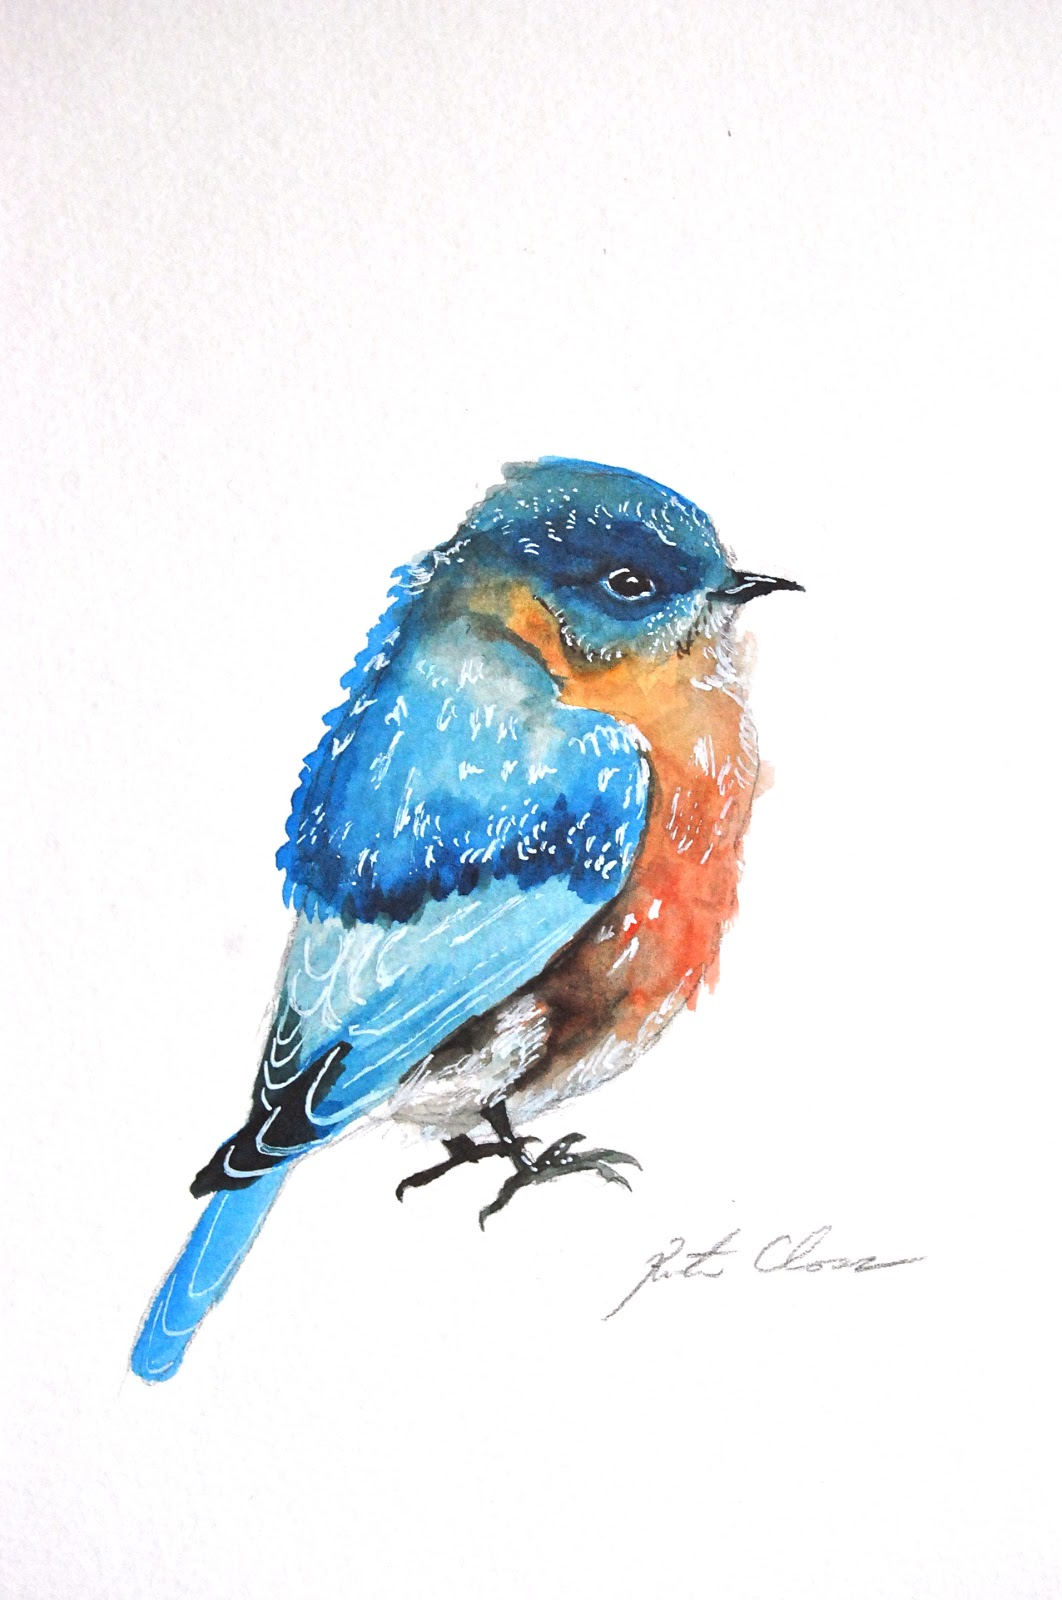 """analysis of bluebird This poem is about a bird with two identities like most people who have two personalities, one for the public and one for the private the first couple of stanzas introduces the bluebird that is viewed with this magnificent beauty in stanza 3, the bluebird """"sings a sad song"""" which refers to a cry of."""